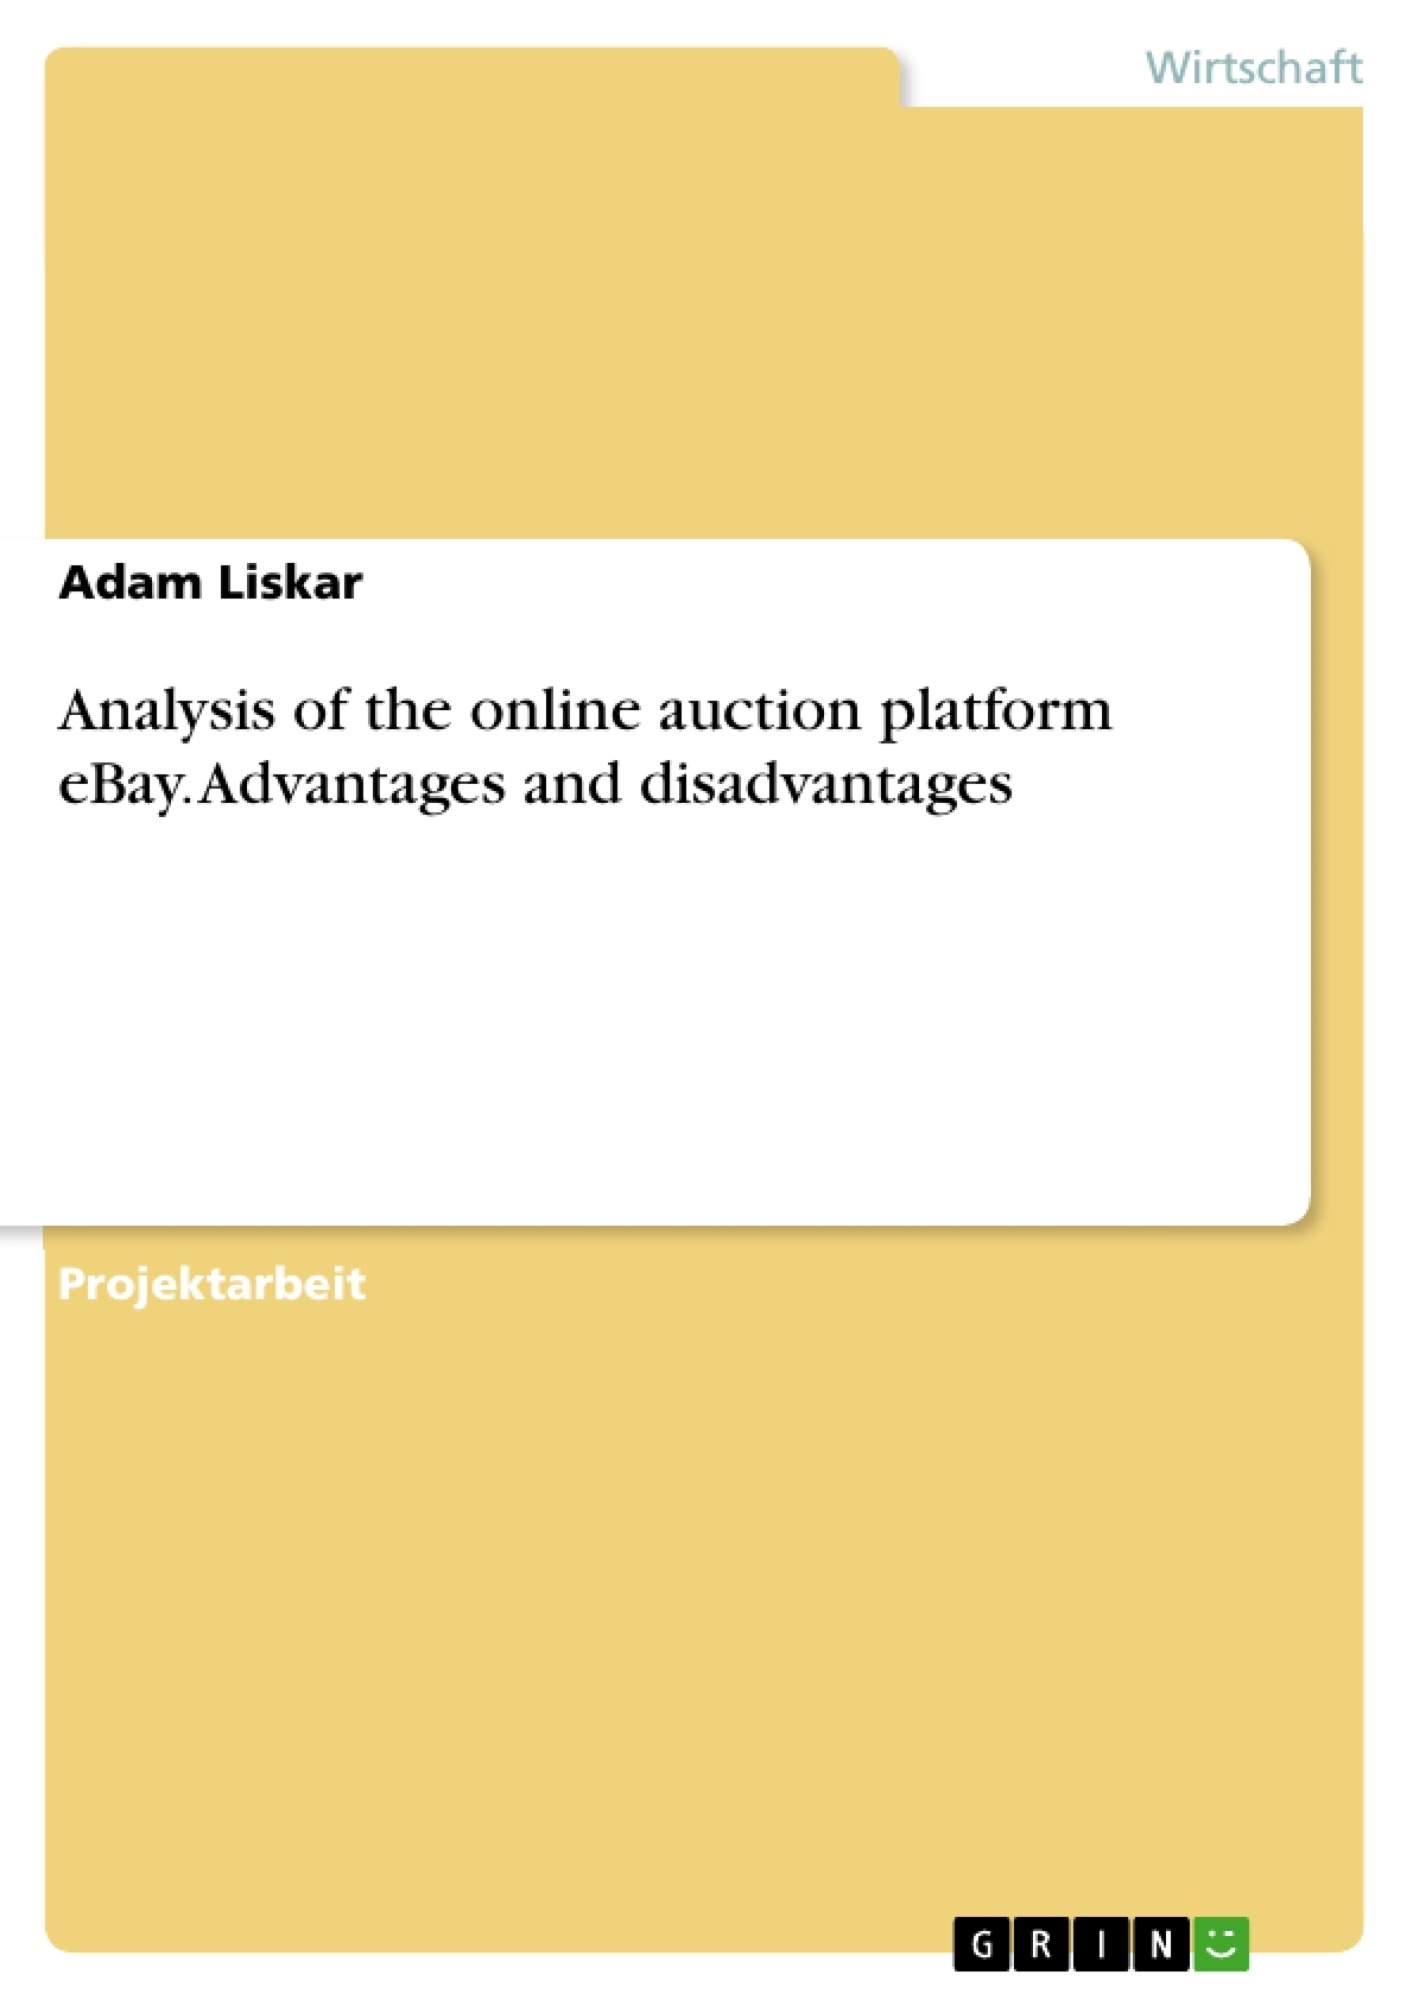 Titel: Analysis of the online auction platform eBay. Advantages and disadvantages